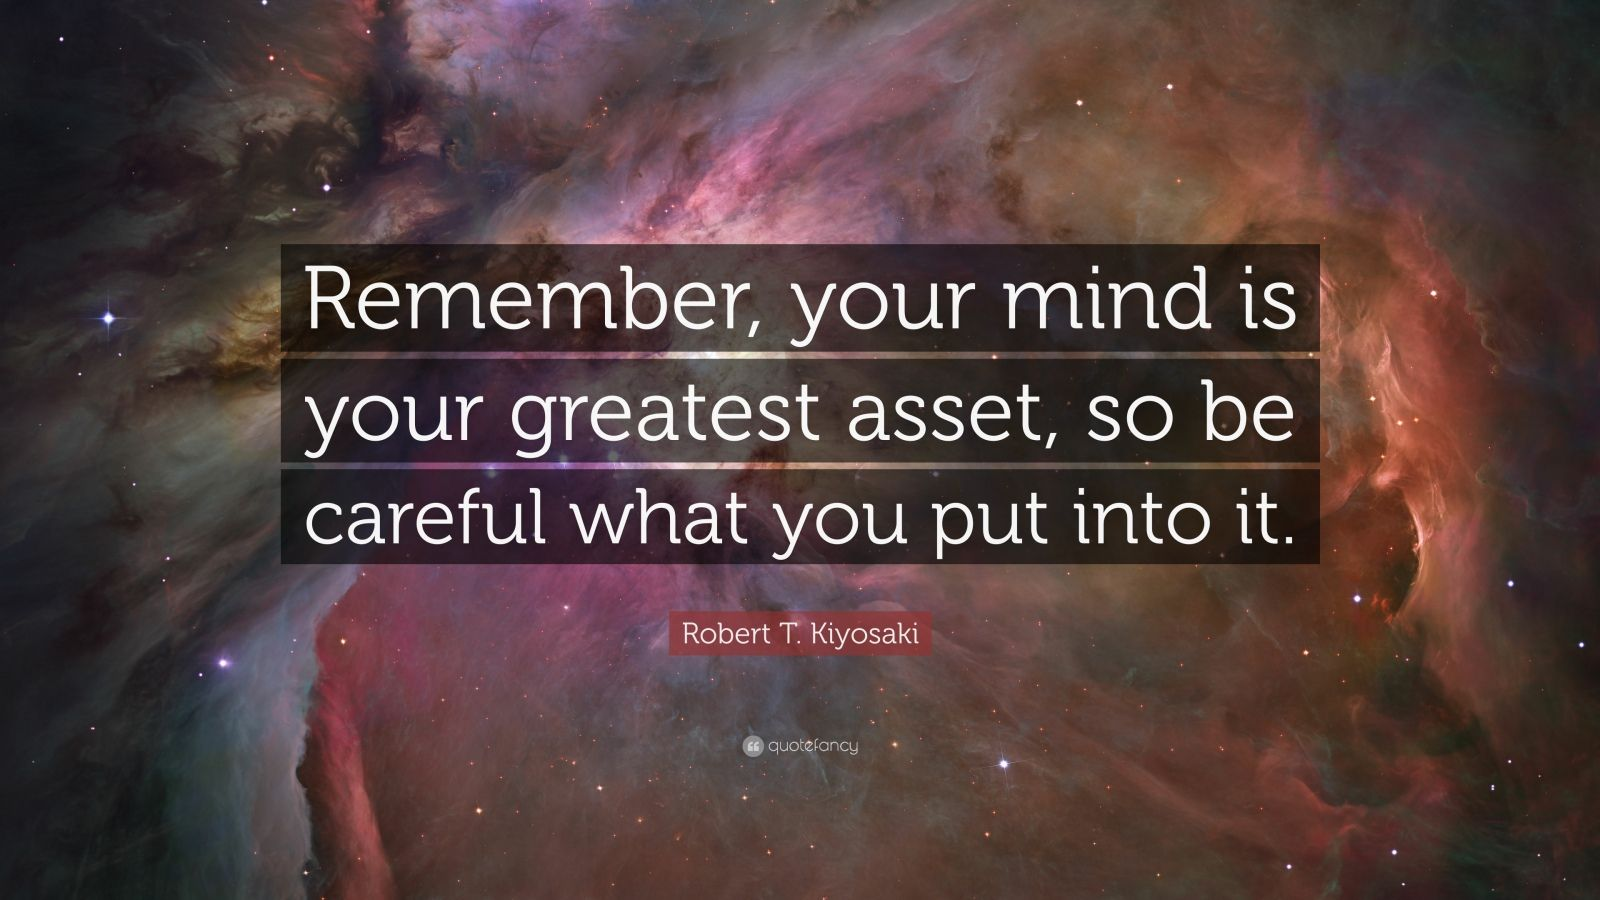 """Robert T. Kiyosaki Quote: """"Remember, your mind is your greatest asset, so be careful what you put into it."""""""